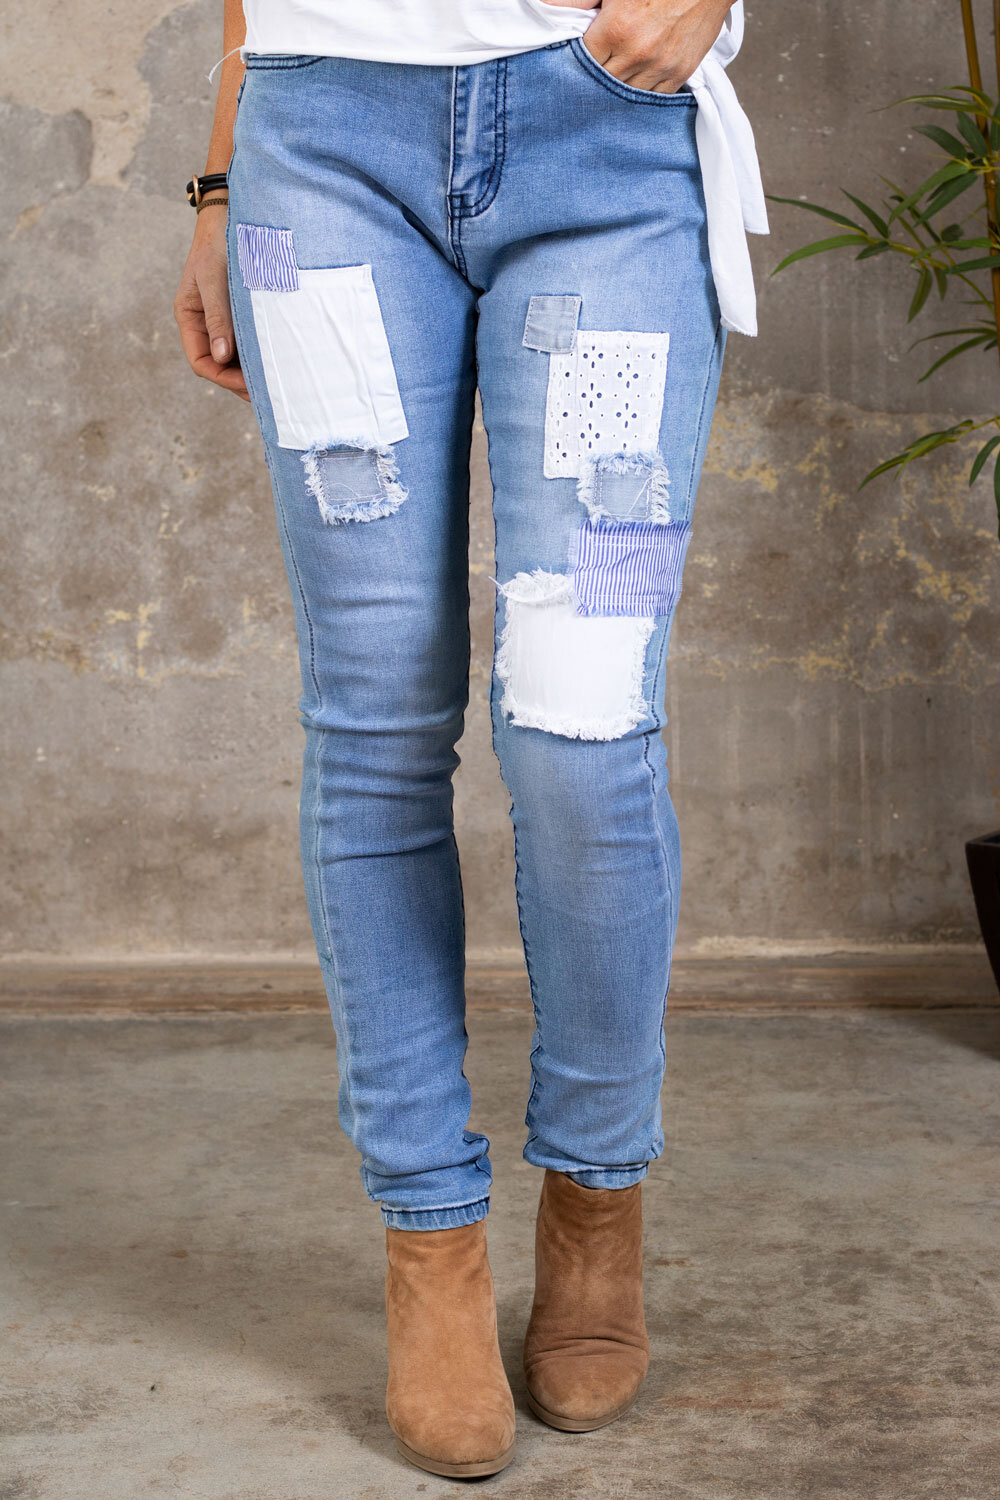 Jeans with patches - JW9158 - Light washing